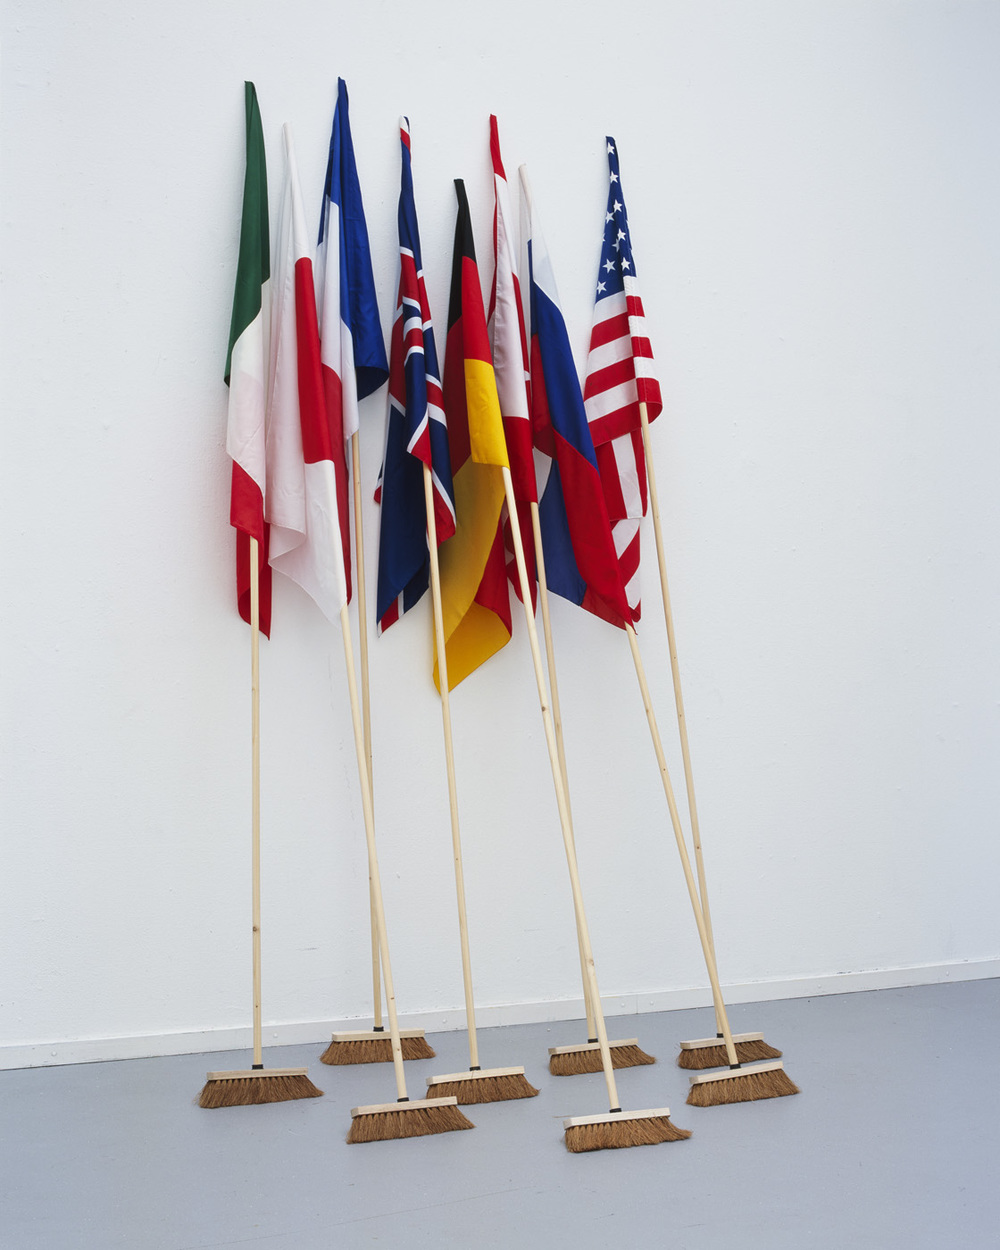 Mounir Fatmi   G8-The Brooms (Contamination) , 2008 12 wood sticks 3 meters high, 8 national flags, 4 black flags (150 x 100 cm each) dimensions variable